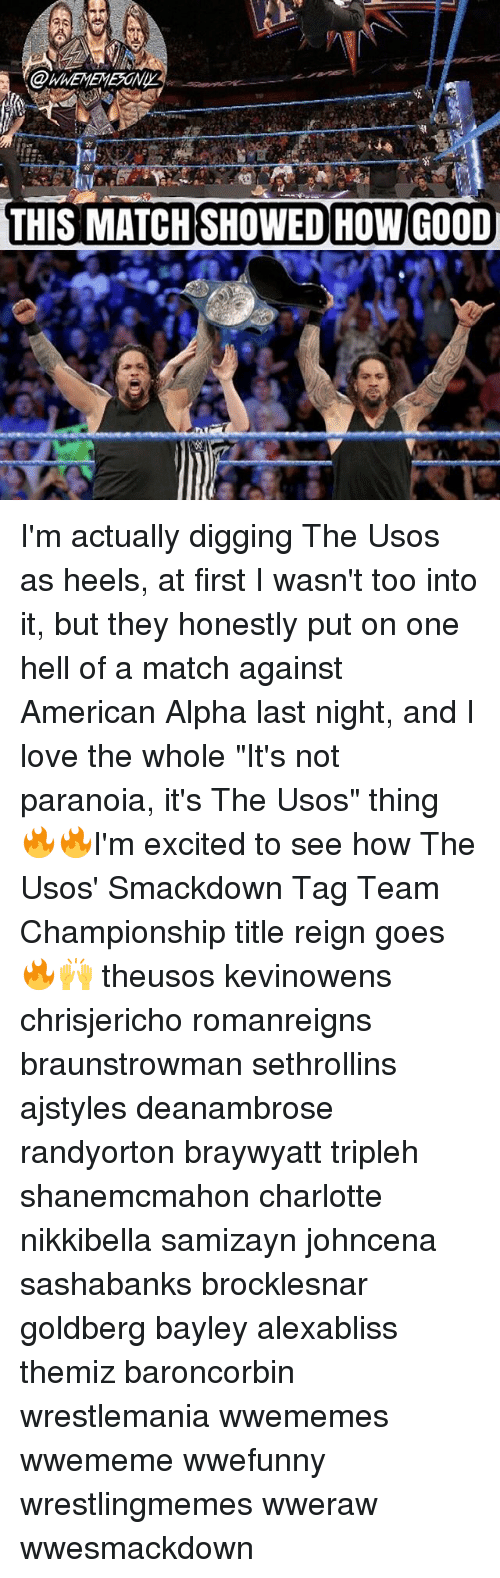 """tag team: THIS MATCH SHOWED HOW GOOD I'm actually digging The Usos as heels, at first I wasn't too into it, but they honestly put on one hell of a match against American Alpha last night, and I love the whole """"It's not paranoia, it's The Usos"""" thing 🔥🔥I'm excited to see how The Usos' Smackdown Tag Team Championship title reign goes 🔥🙌 theusos kevinowens chrisjericho romanreigns braunstrowman sethrollins ajstyles deanambrose randyorton braywyatt tripleh shanemcmahon charlotte nikkibella samizayn johncena sashabanks brocklesnar goldberg bayley alexabliss themiz baroncorbin wrestlemania wwememes wwememe wwefunny wrestlingmemes wweraw wwesmackdown"""